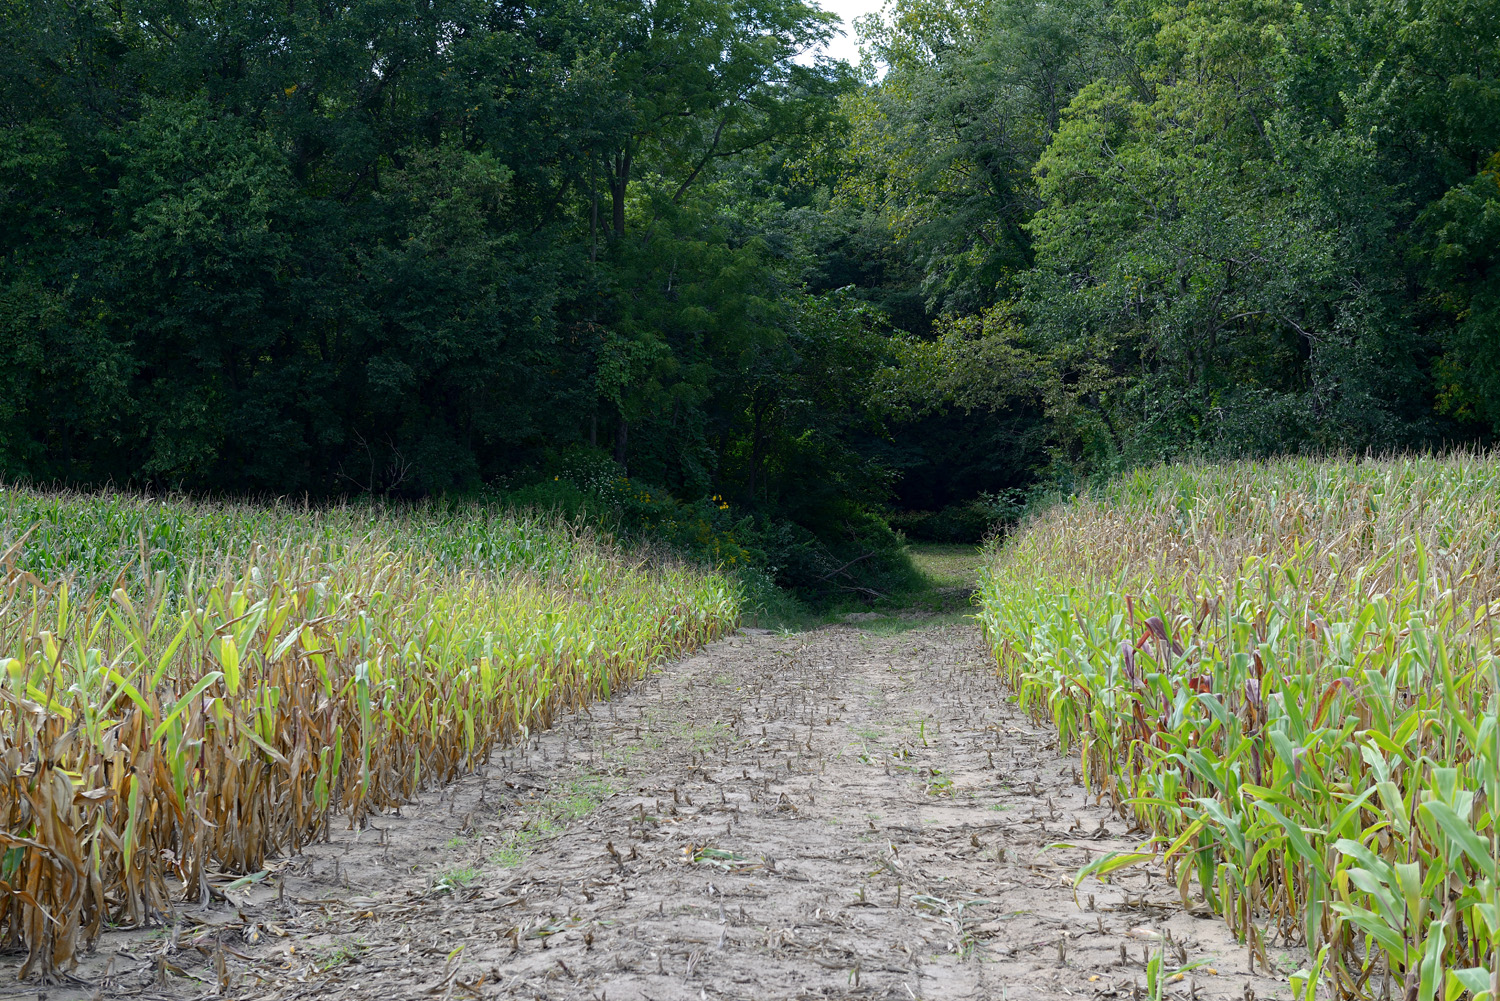 Cornfields at the Sandy Hollow site, before restoration began.